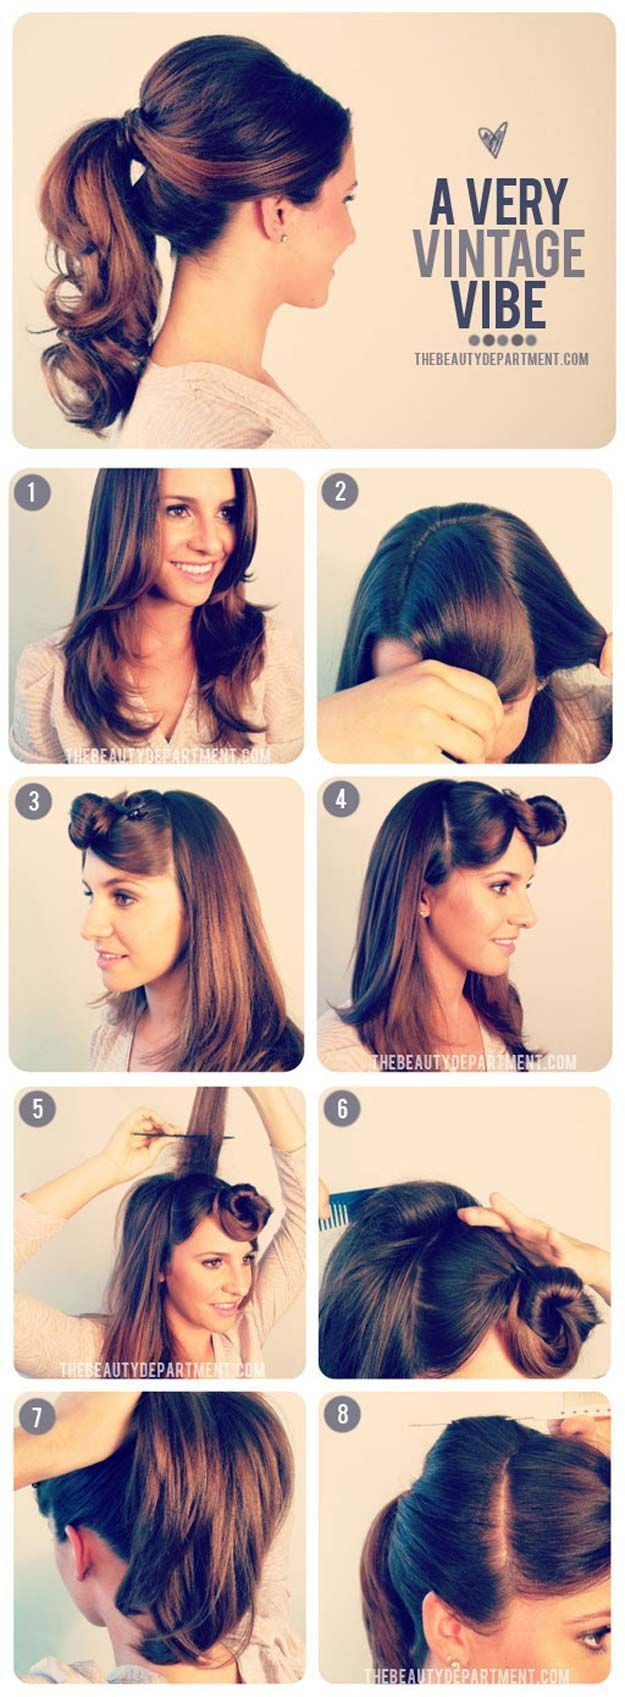 easy hairstyles for work shoulder length hair lazy girl and